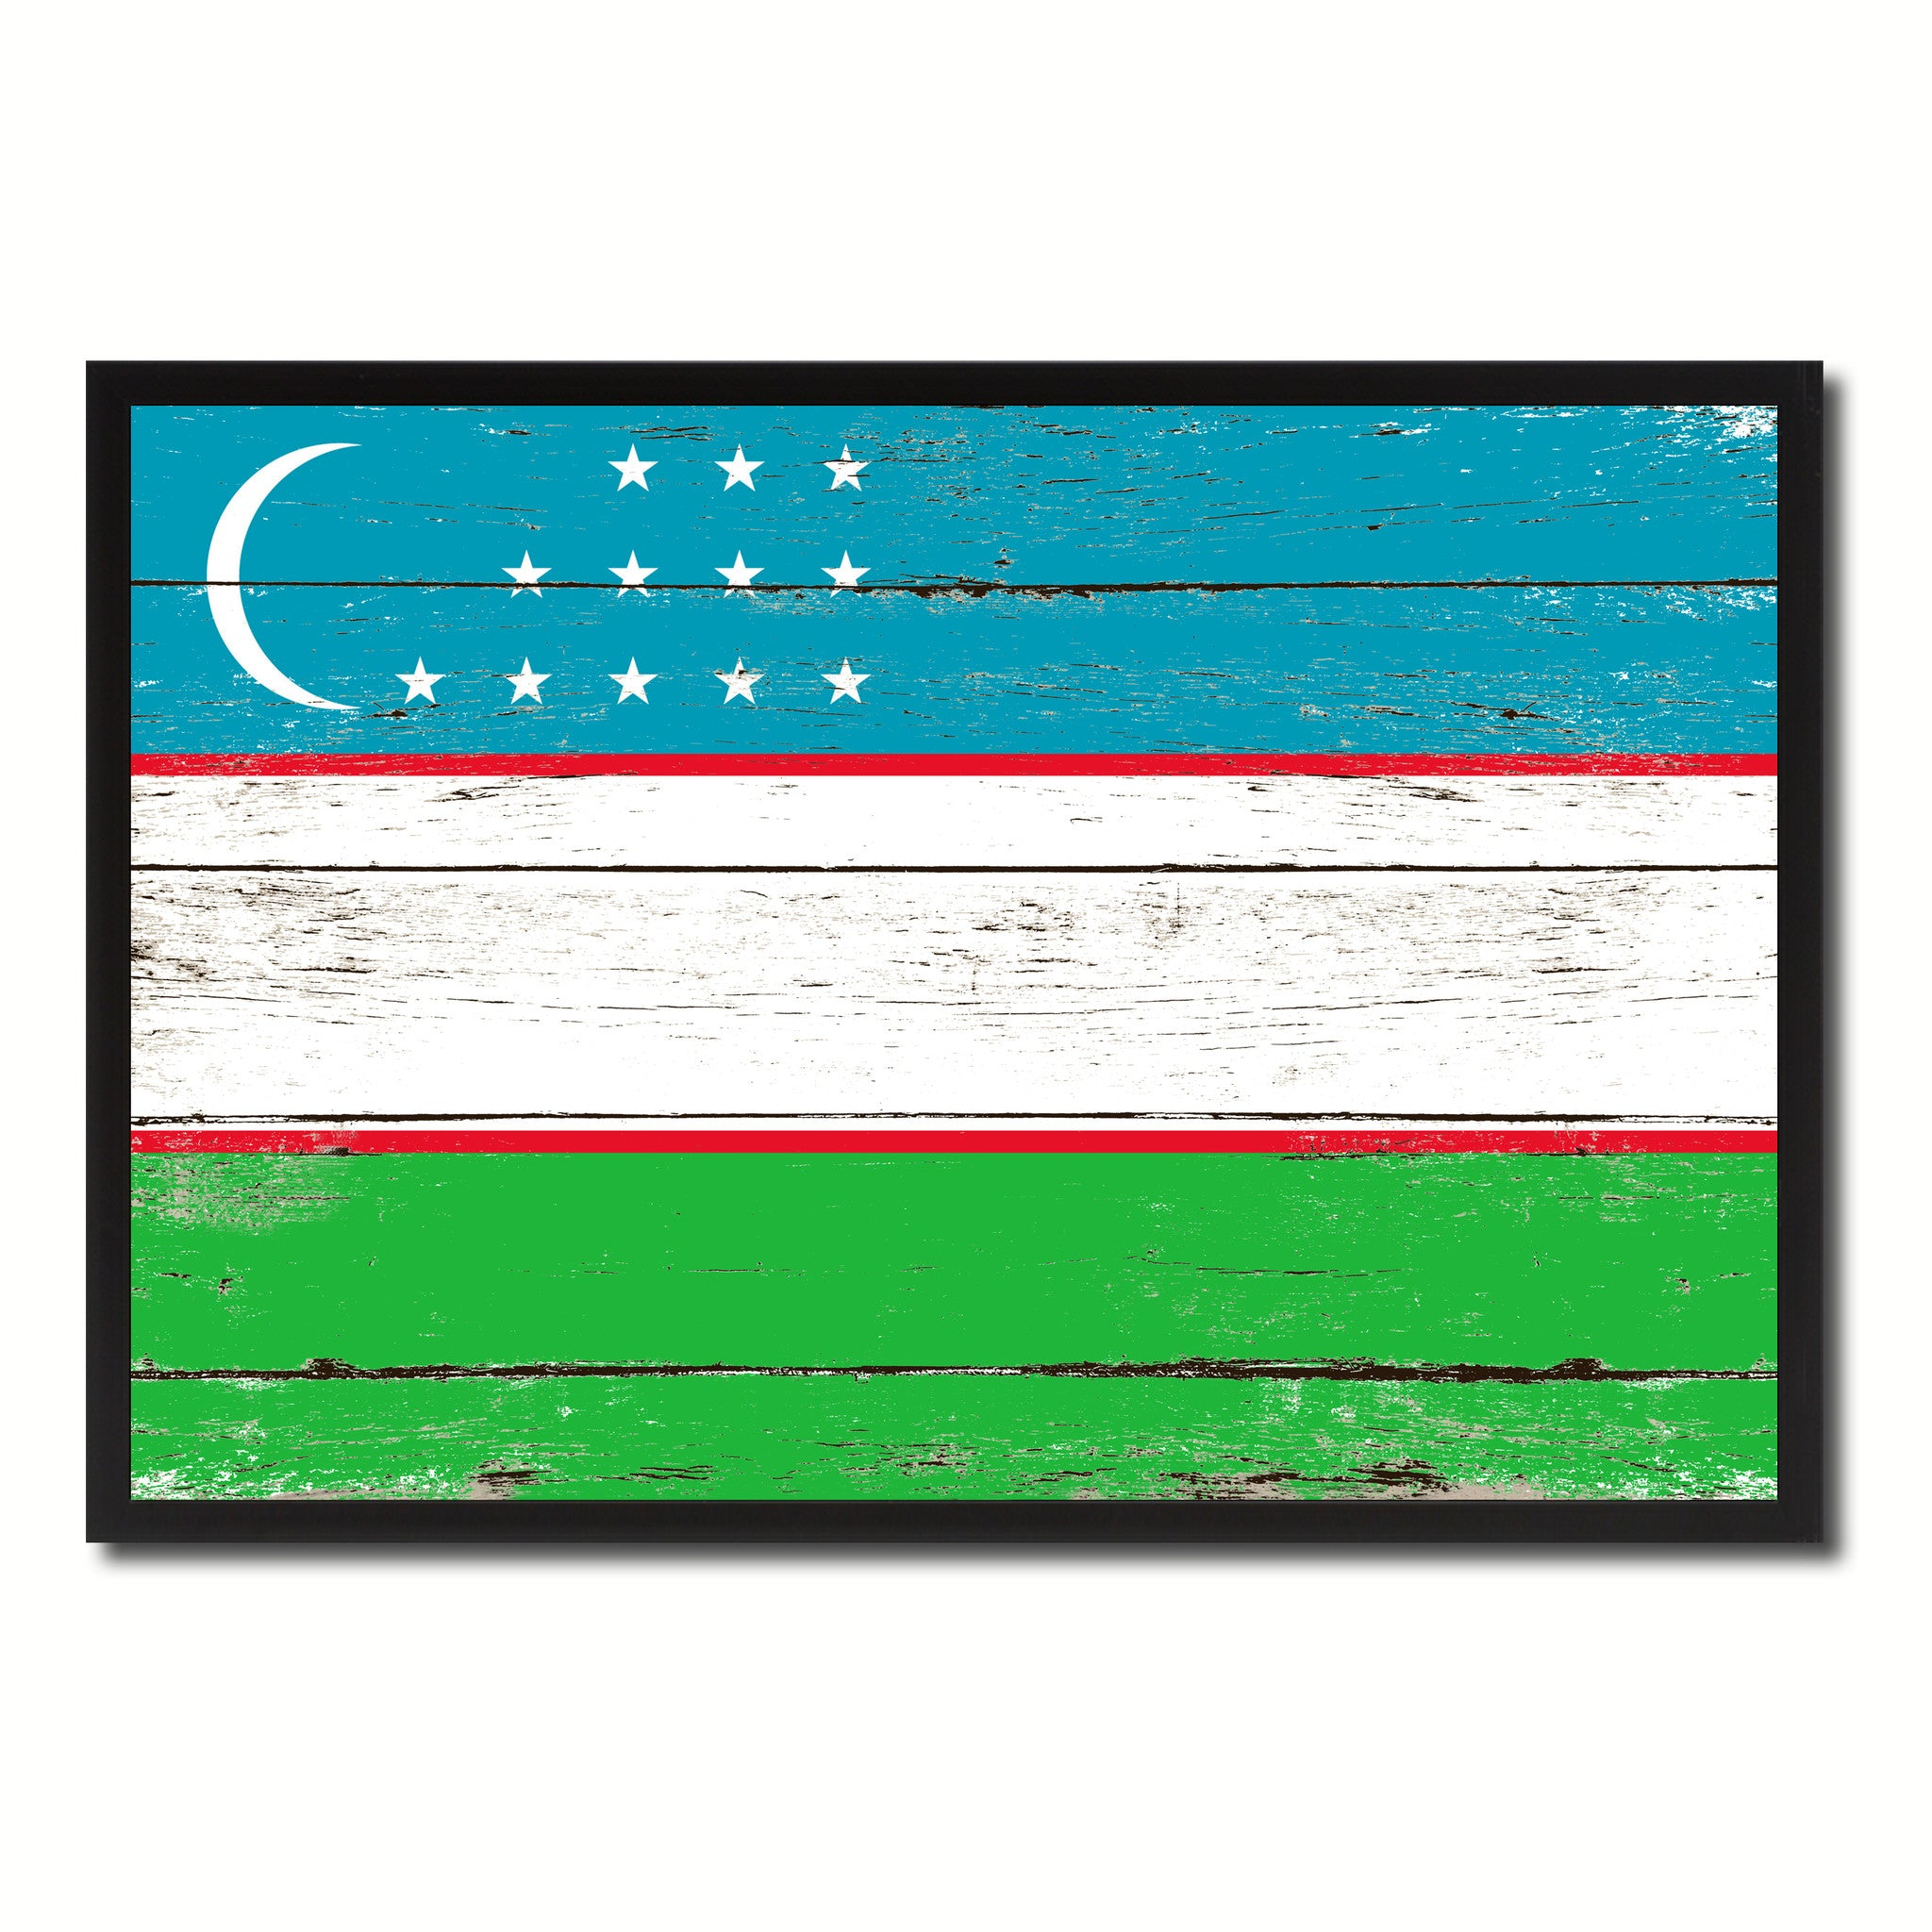 Uzbekistan Country National Flag Vintage Canvas Print with Picture Frame Home Decor Wall Art Collection Gift Ideas